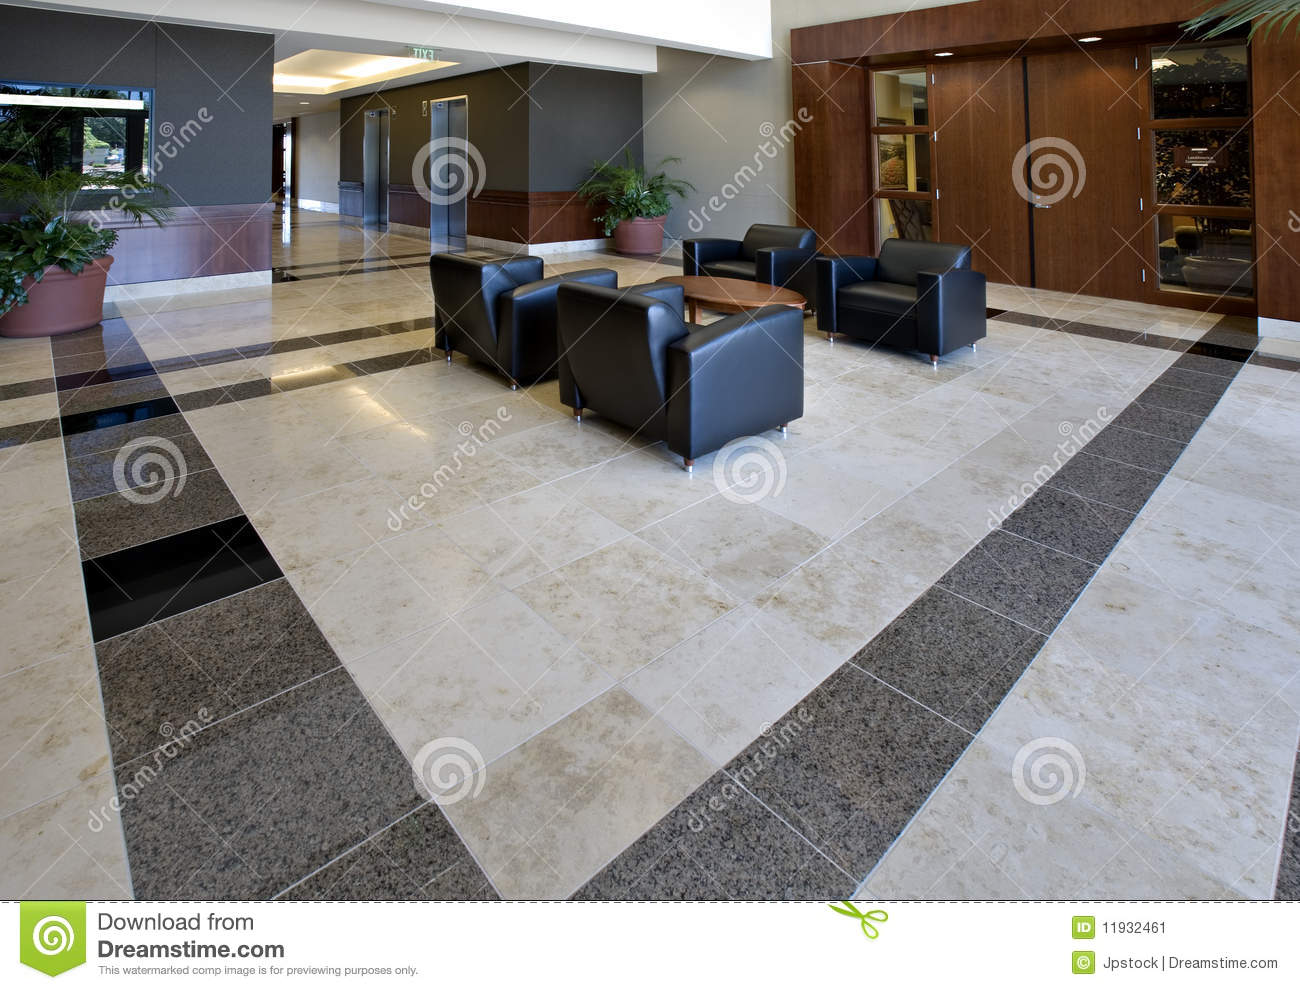 Office Lobby Showing Tile Floor Stock Image Image Of Table